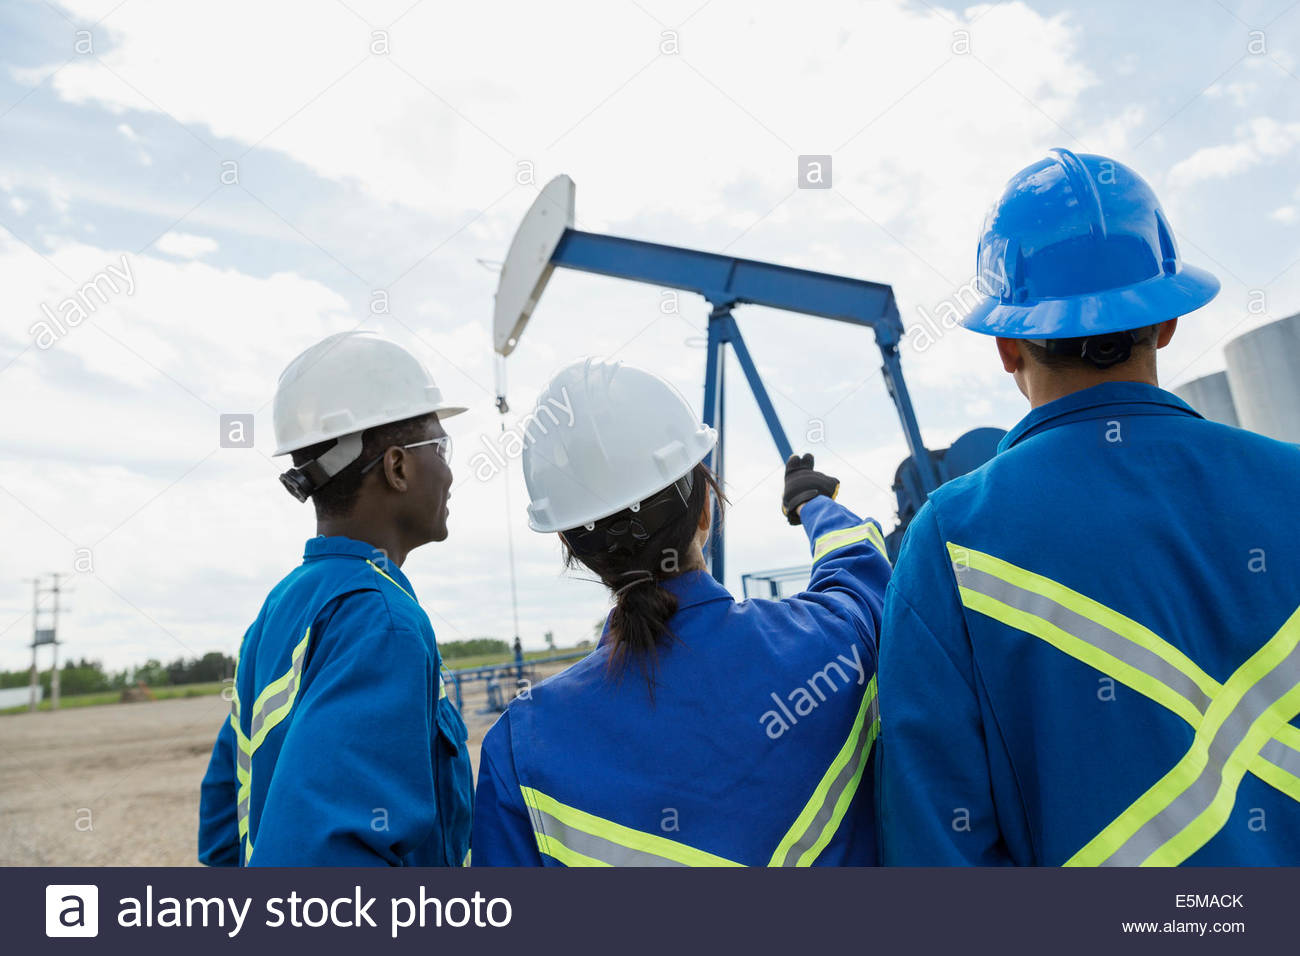 Workers looking at oil well - Stock Image